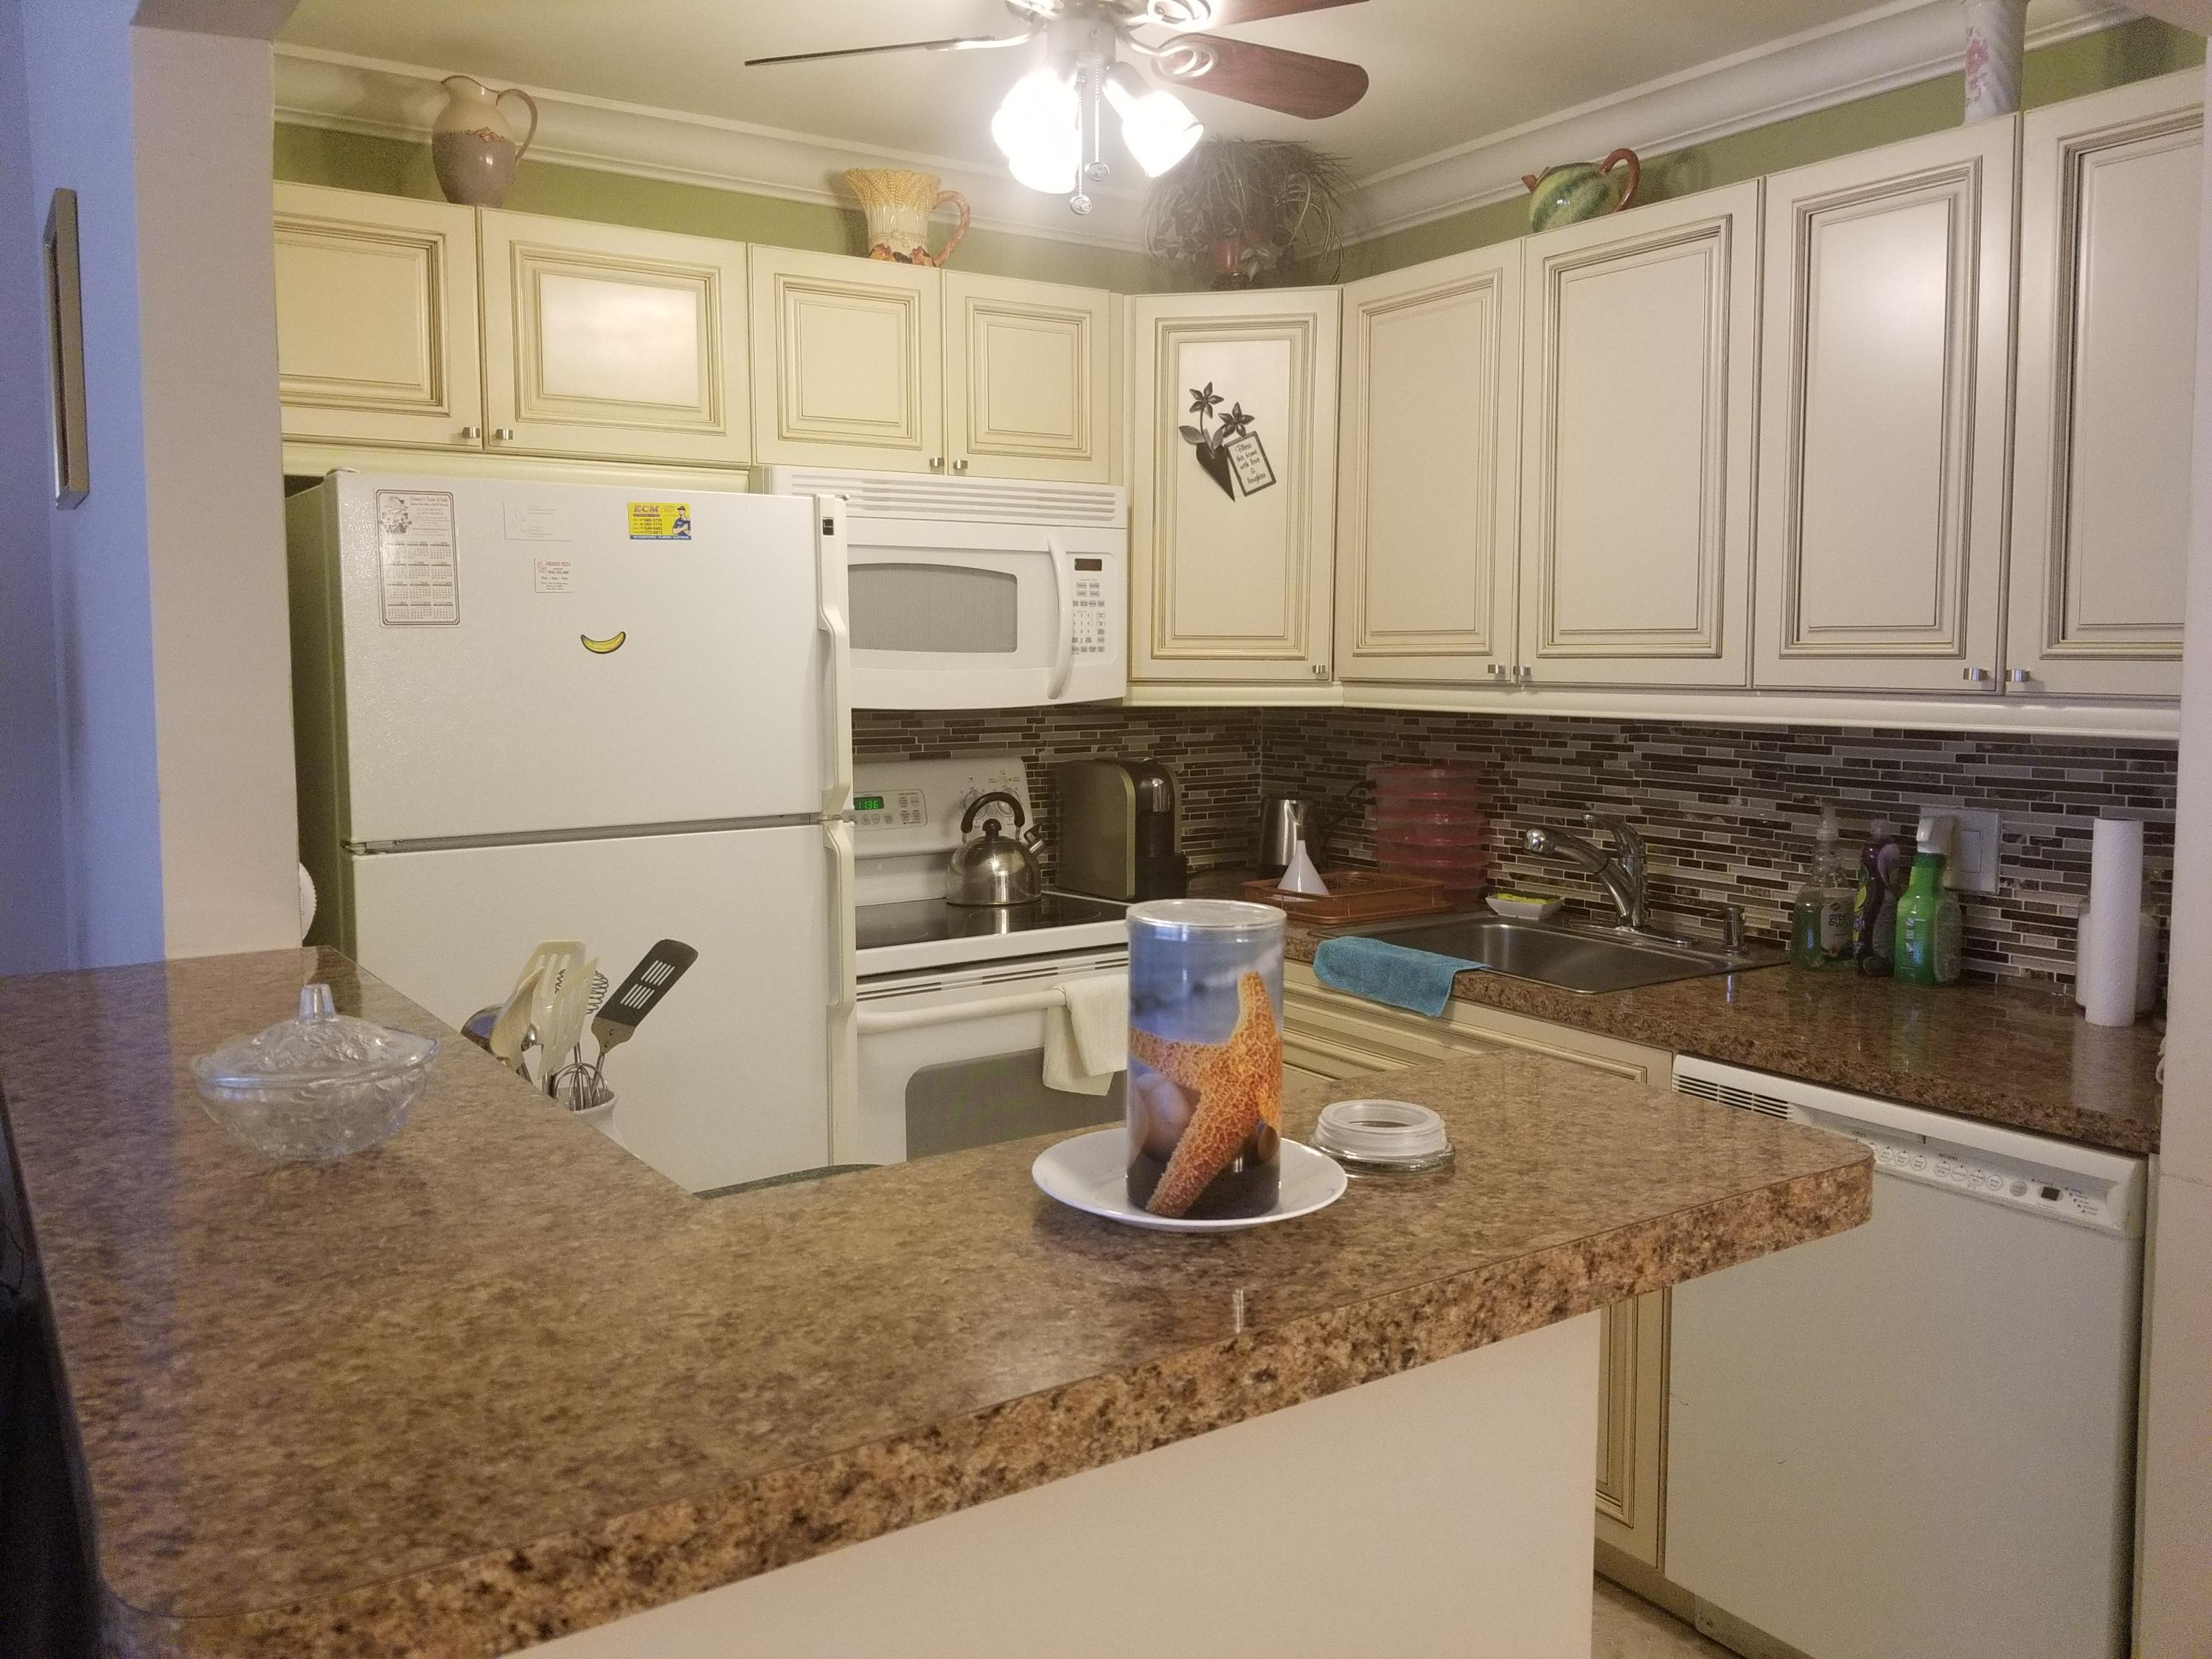 247 Southampton C, West Palm Beach, Florida 33417, 1 Bedroom Bedrooms, ,1 BathroomBathrooms,Residential,For Sale,Southampton C,RX-10538739